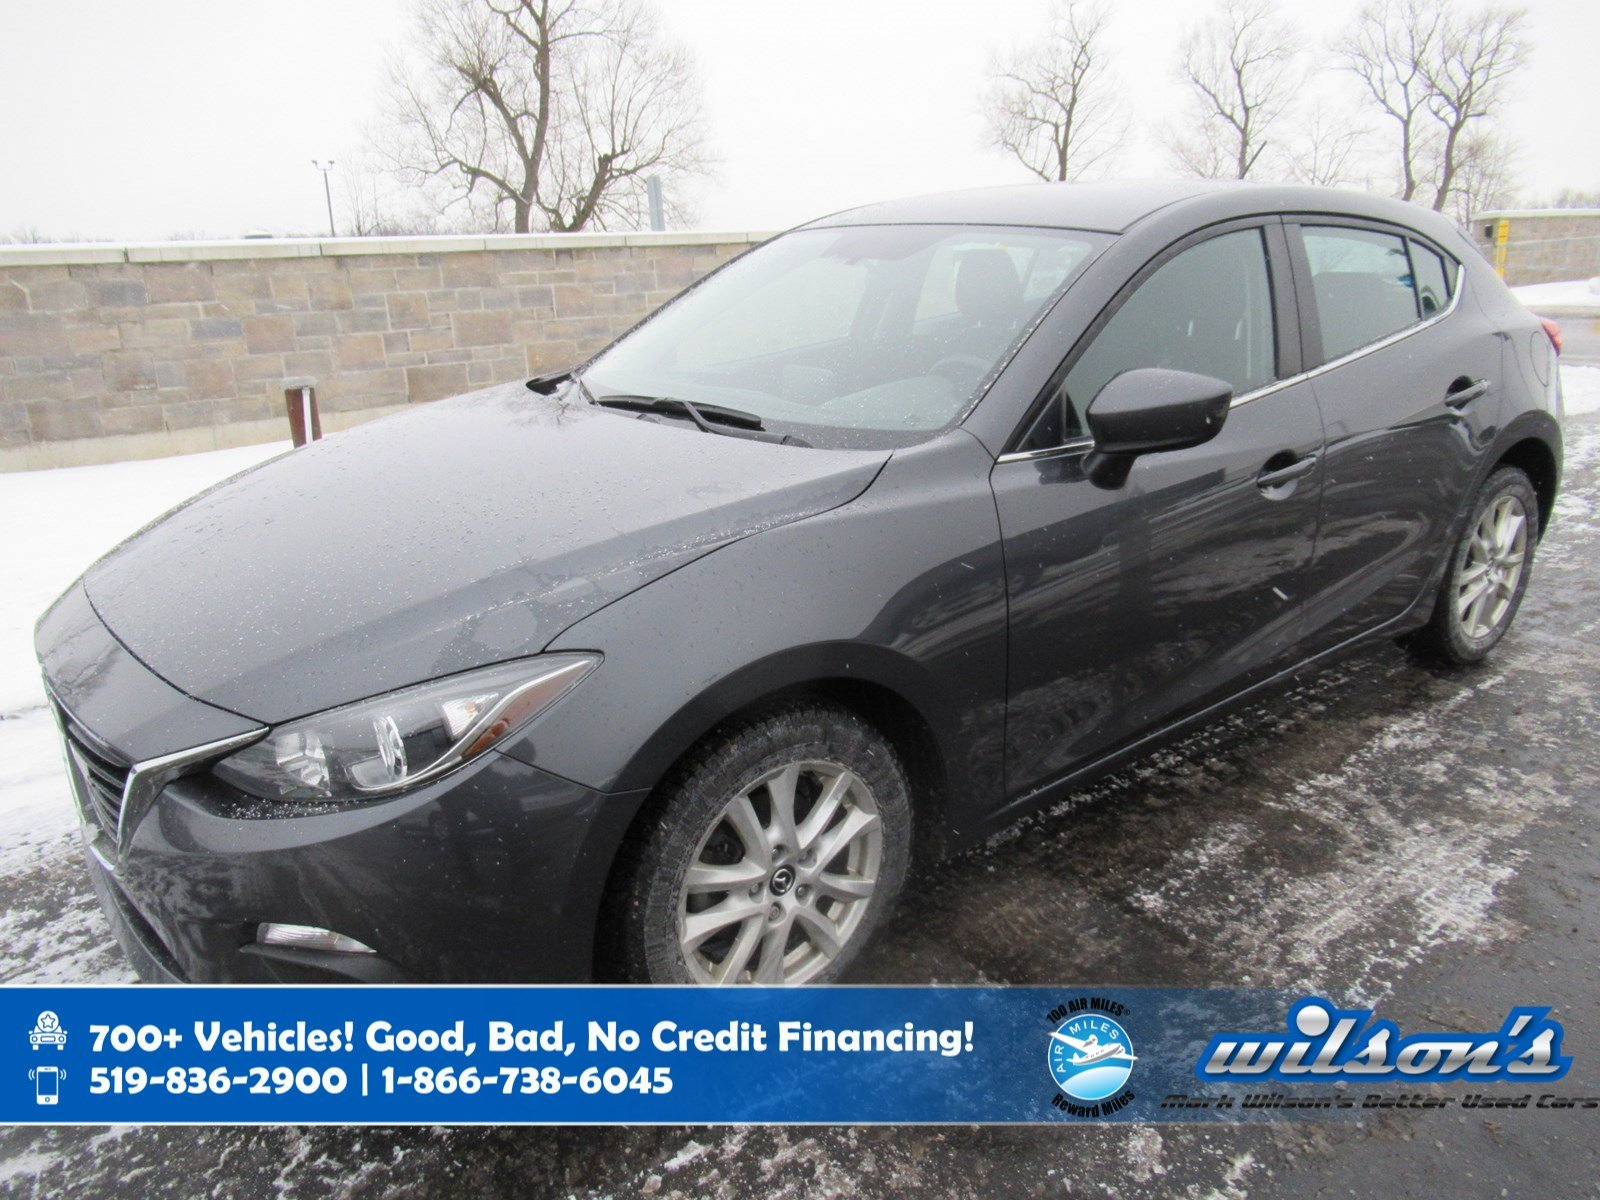 Certified Pre-Owned 2016 Mazda3 GS Hatchback, Navigation, Rear Camera, Heated Seats, Bluetooth, Alloy Wheels and more!